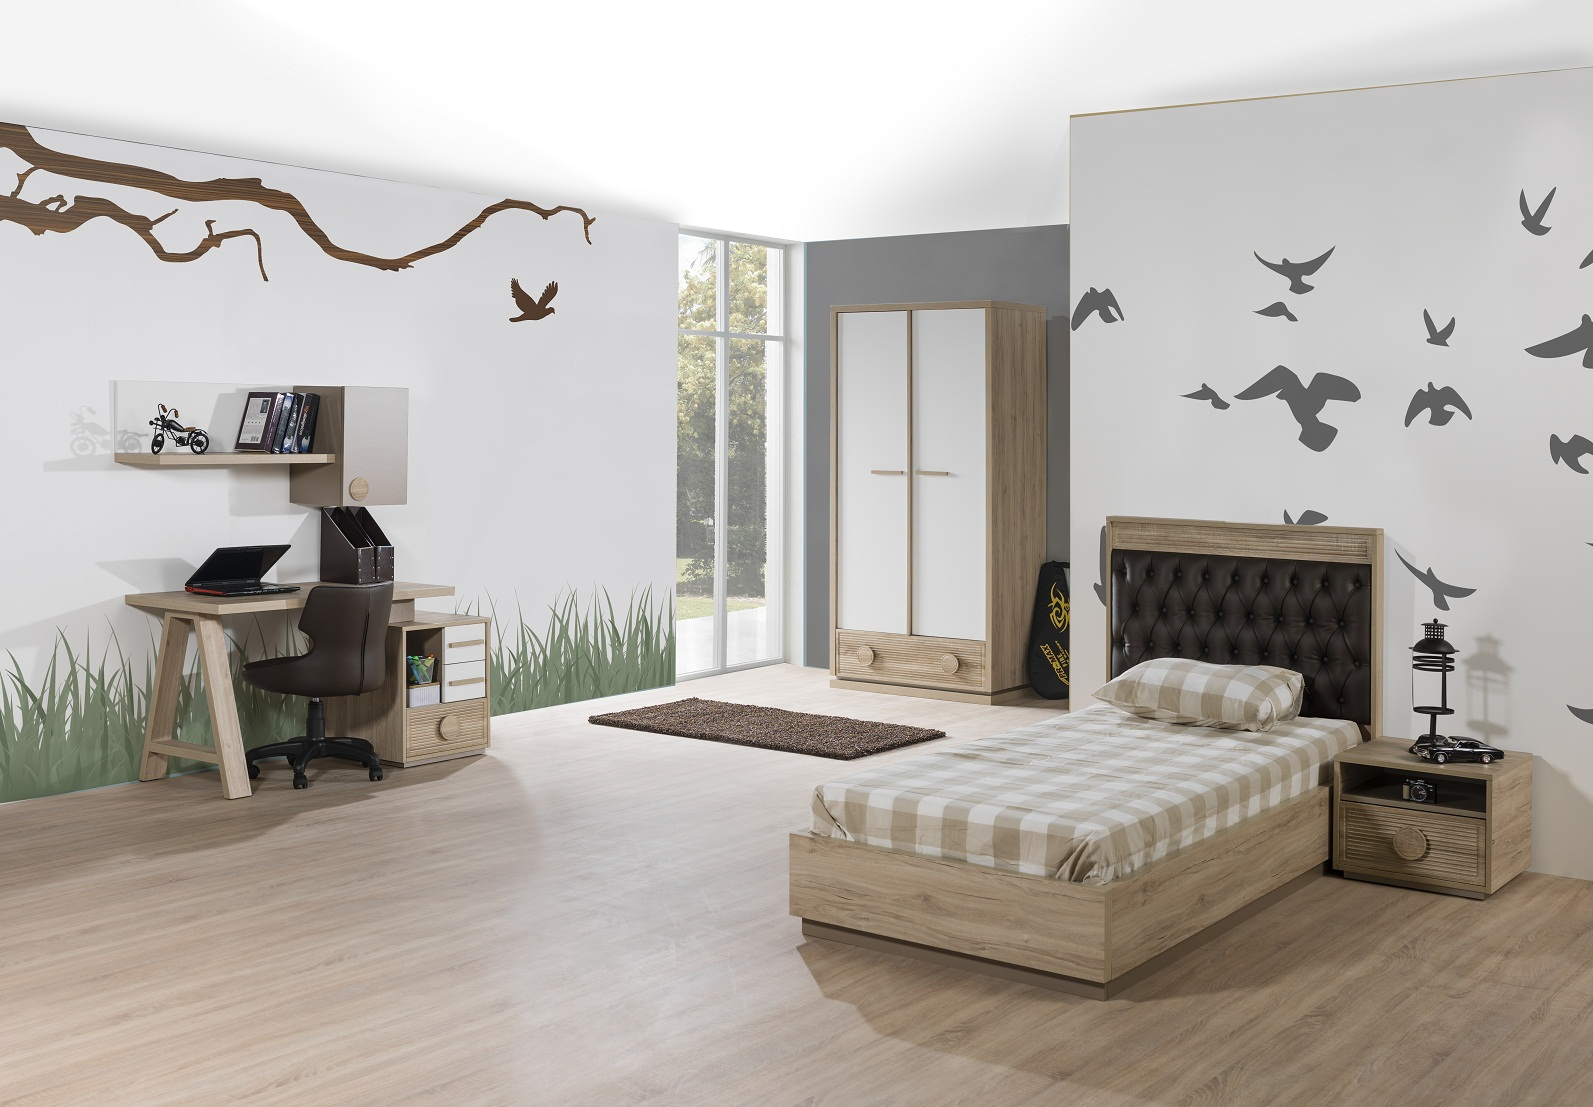 kinderzimmer alfa bett 90x200 cm natur braun weiss jugendzimmer 75004 2 8 14. Black Bedroom Furniture Sets. Home Design Ideas